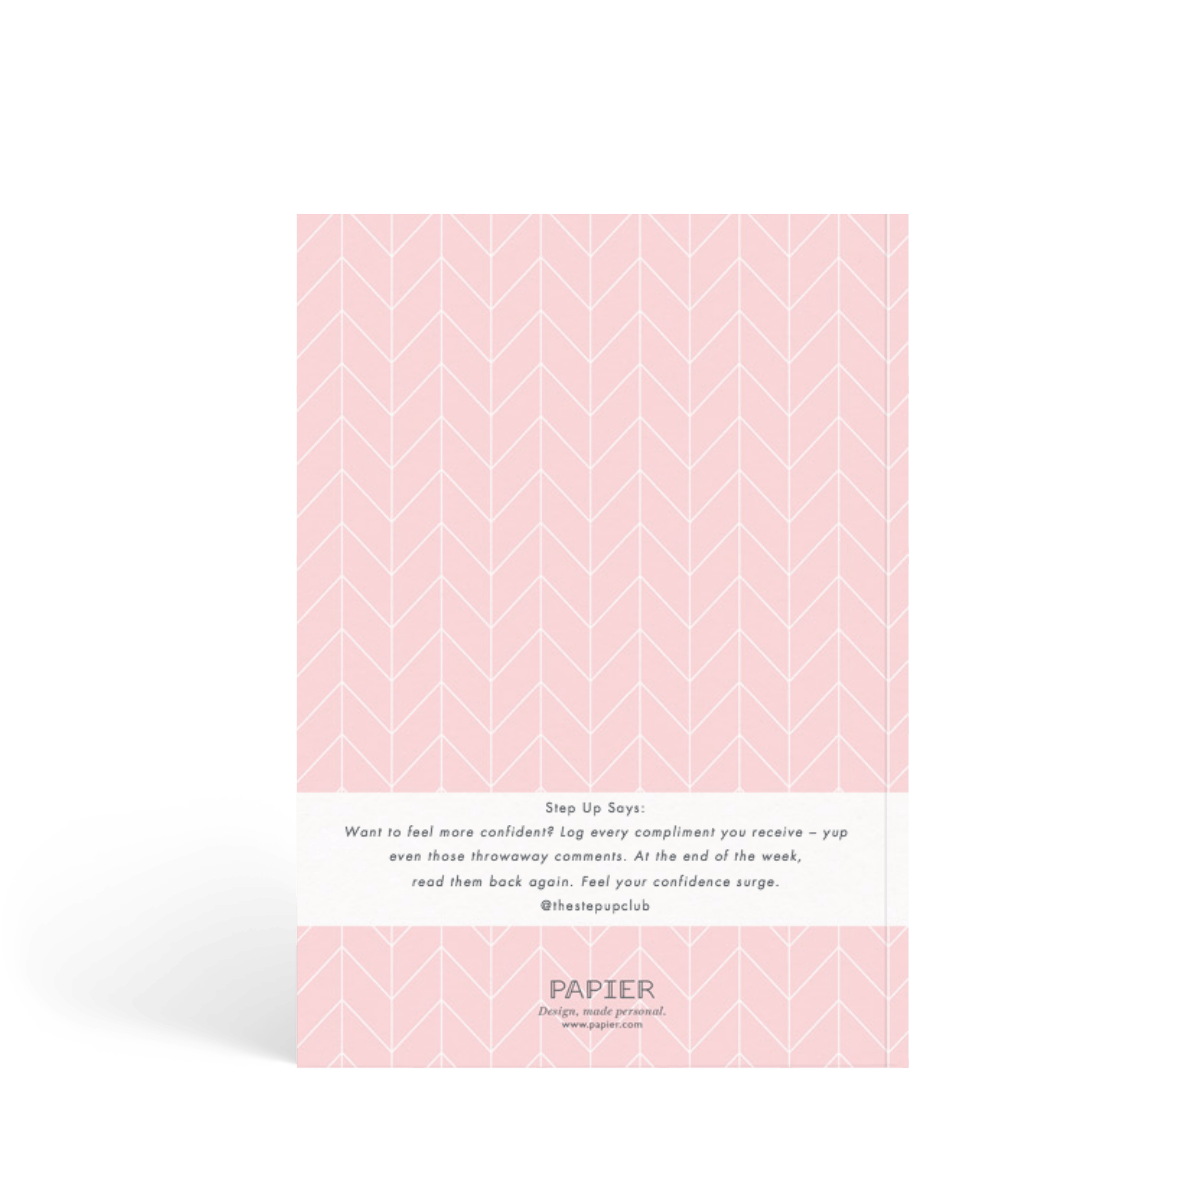 Https%3a%2f%2fwww.papier.com%2fproduct image%2f19873%2f5%2fherringbone rose confidence notes 5087 arriere 1487858215.png?ixlib=rb 1.1